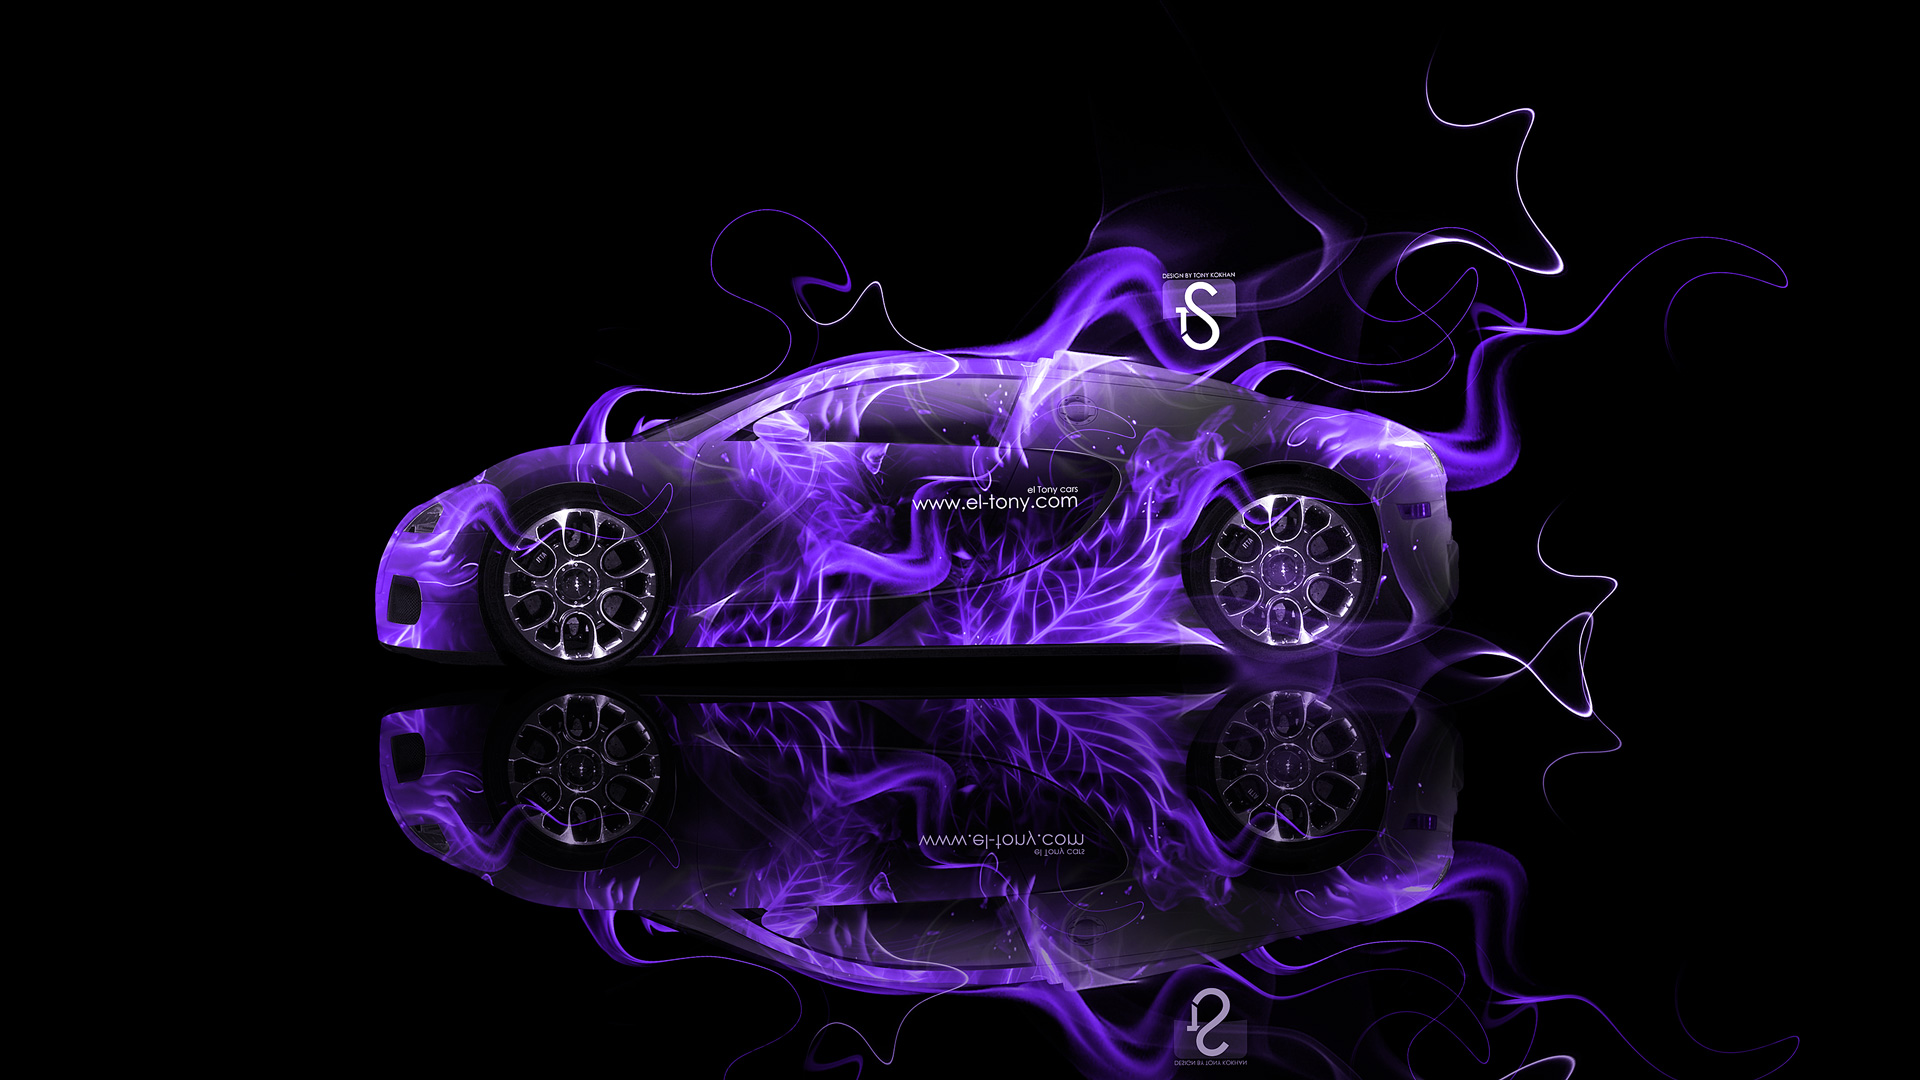 Perfect Bugatti Veyron Violet Fire Abstract Car 2013 HD